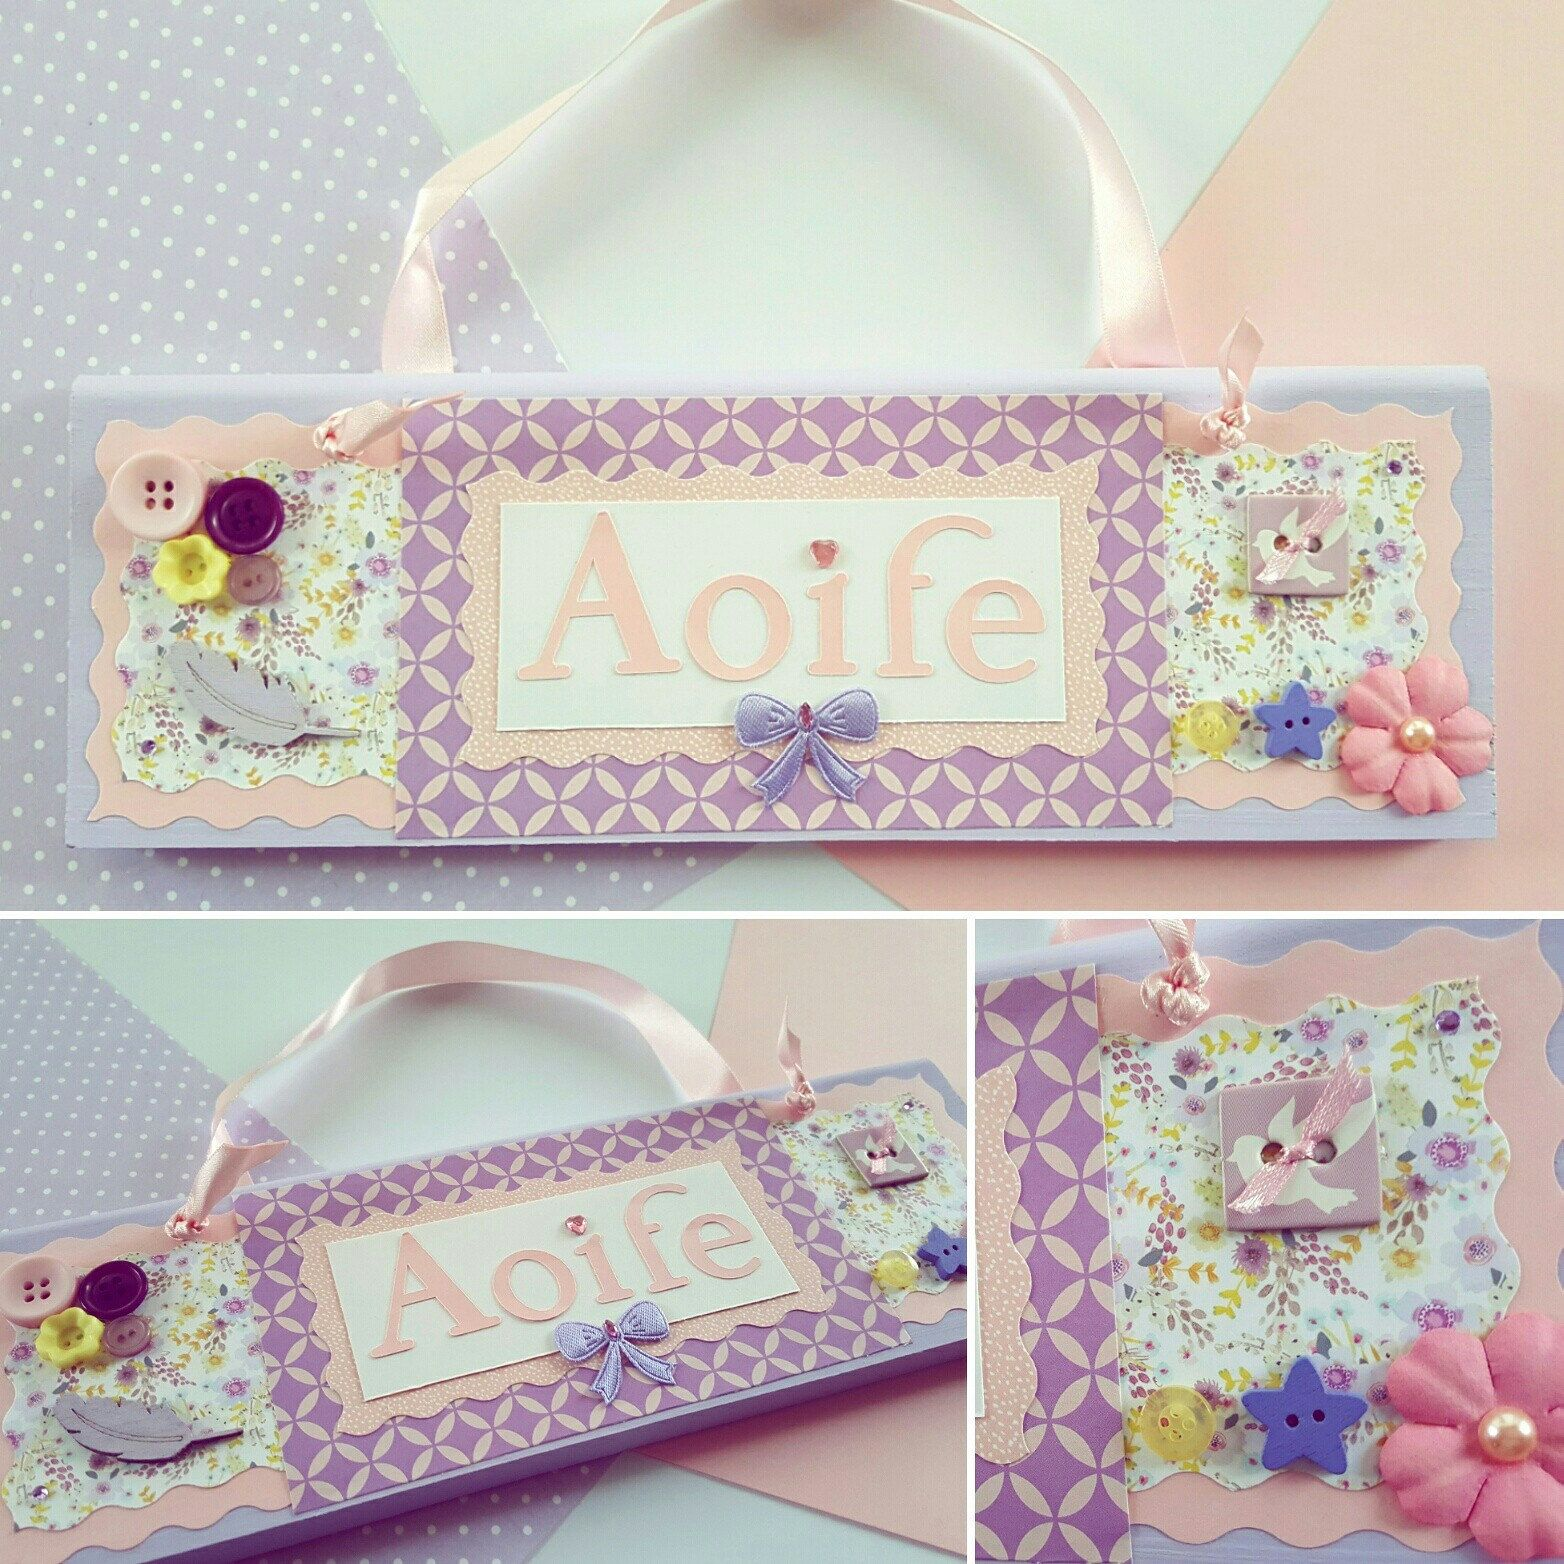 Personalised name plaque door plaque home decor custom baby personalised name plaque door plaque home decor custom baby gift childrens birthday gift sign kids gift handmade room decorations negle Choice Image